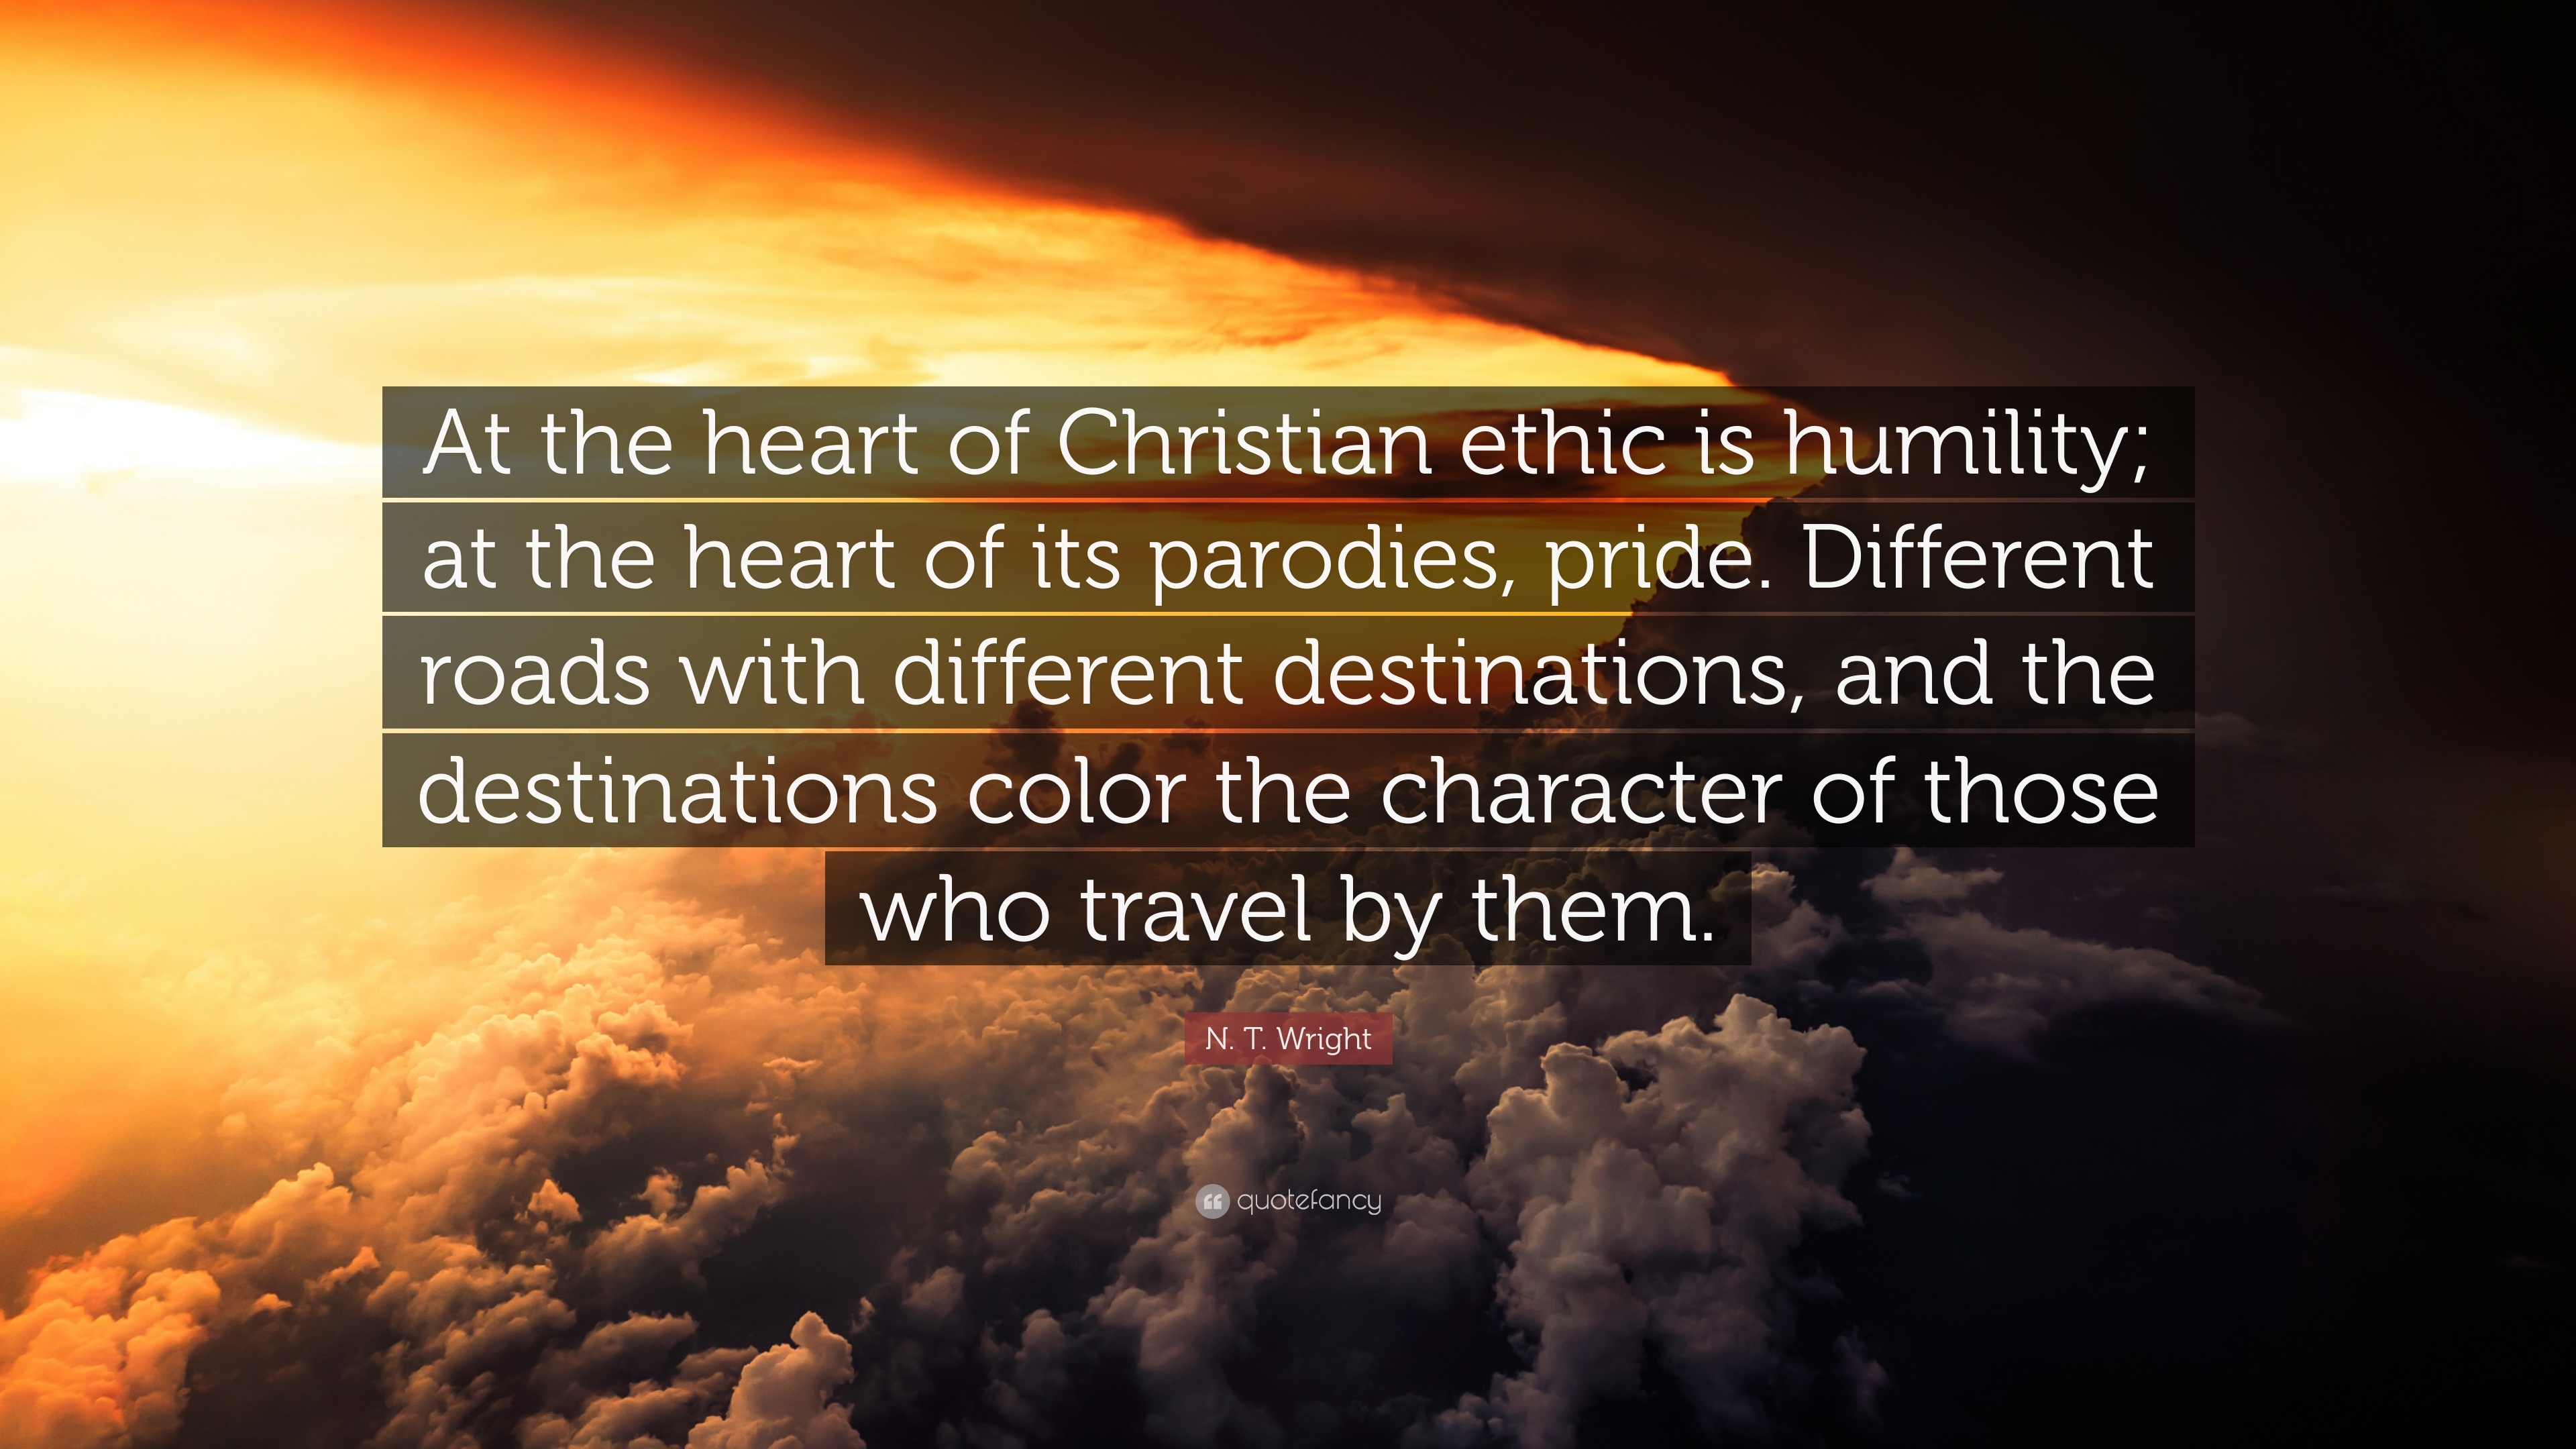 N T Wright Quote At The Heart Of Christian Ethic Is